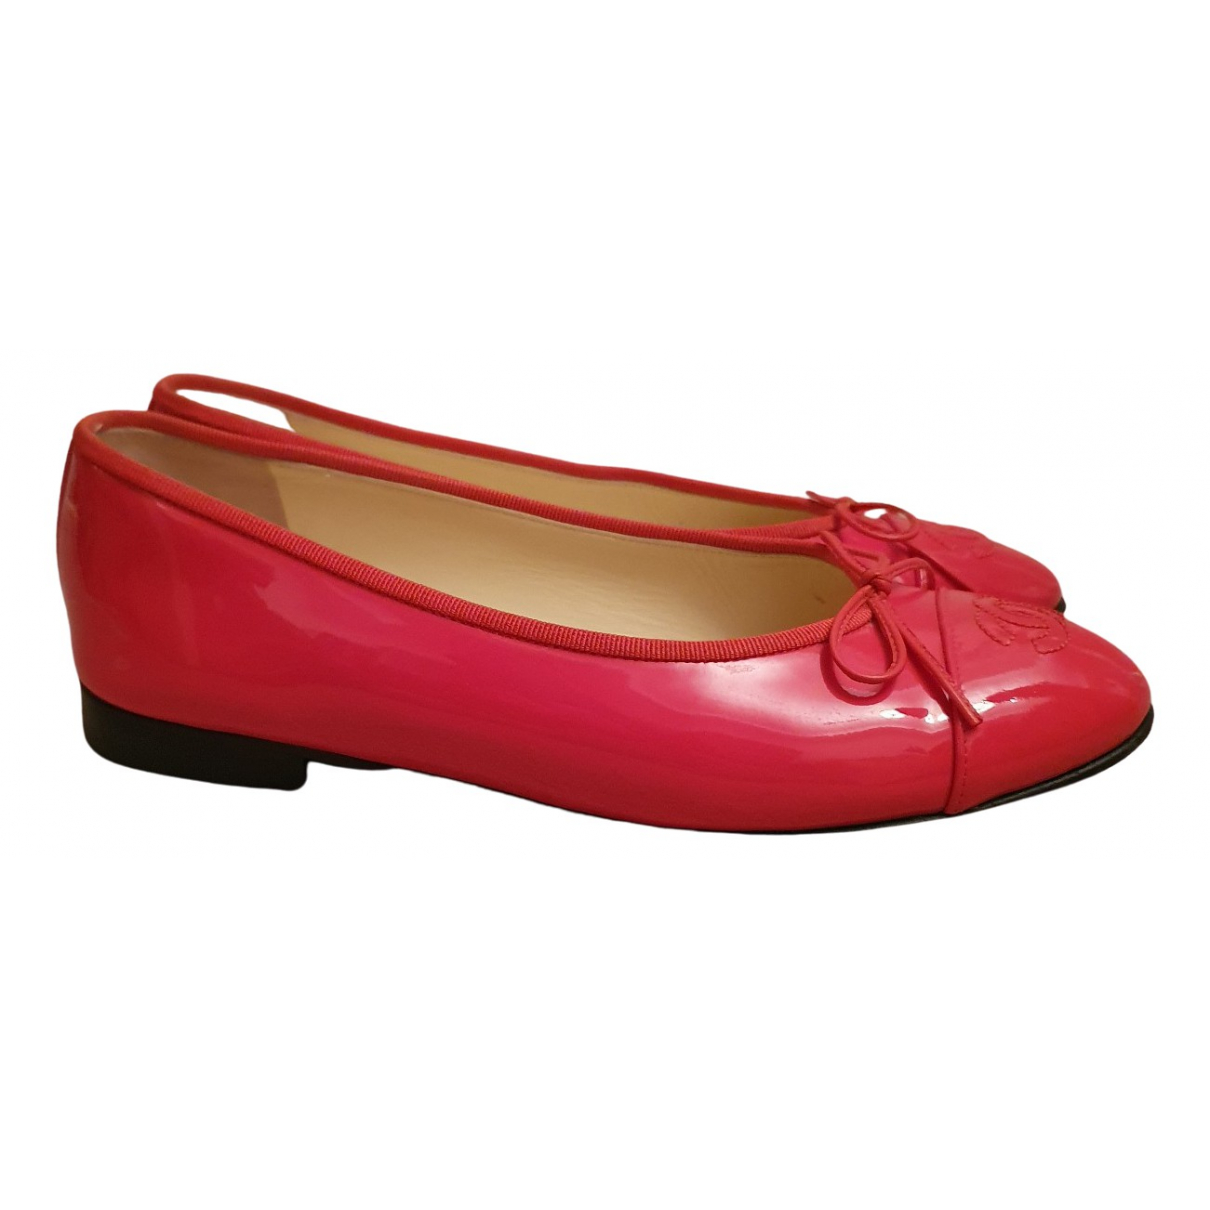 Chanel N Red Patent leather Ballet flats for Women 38.5 EU